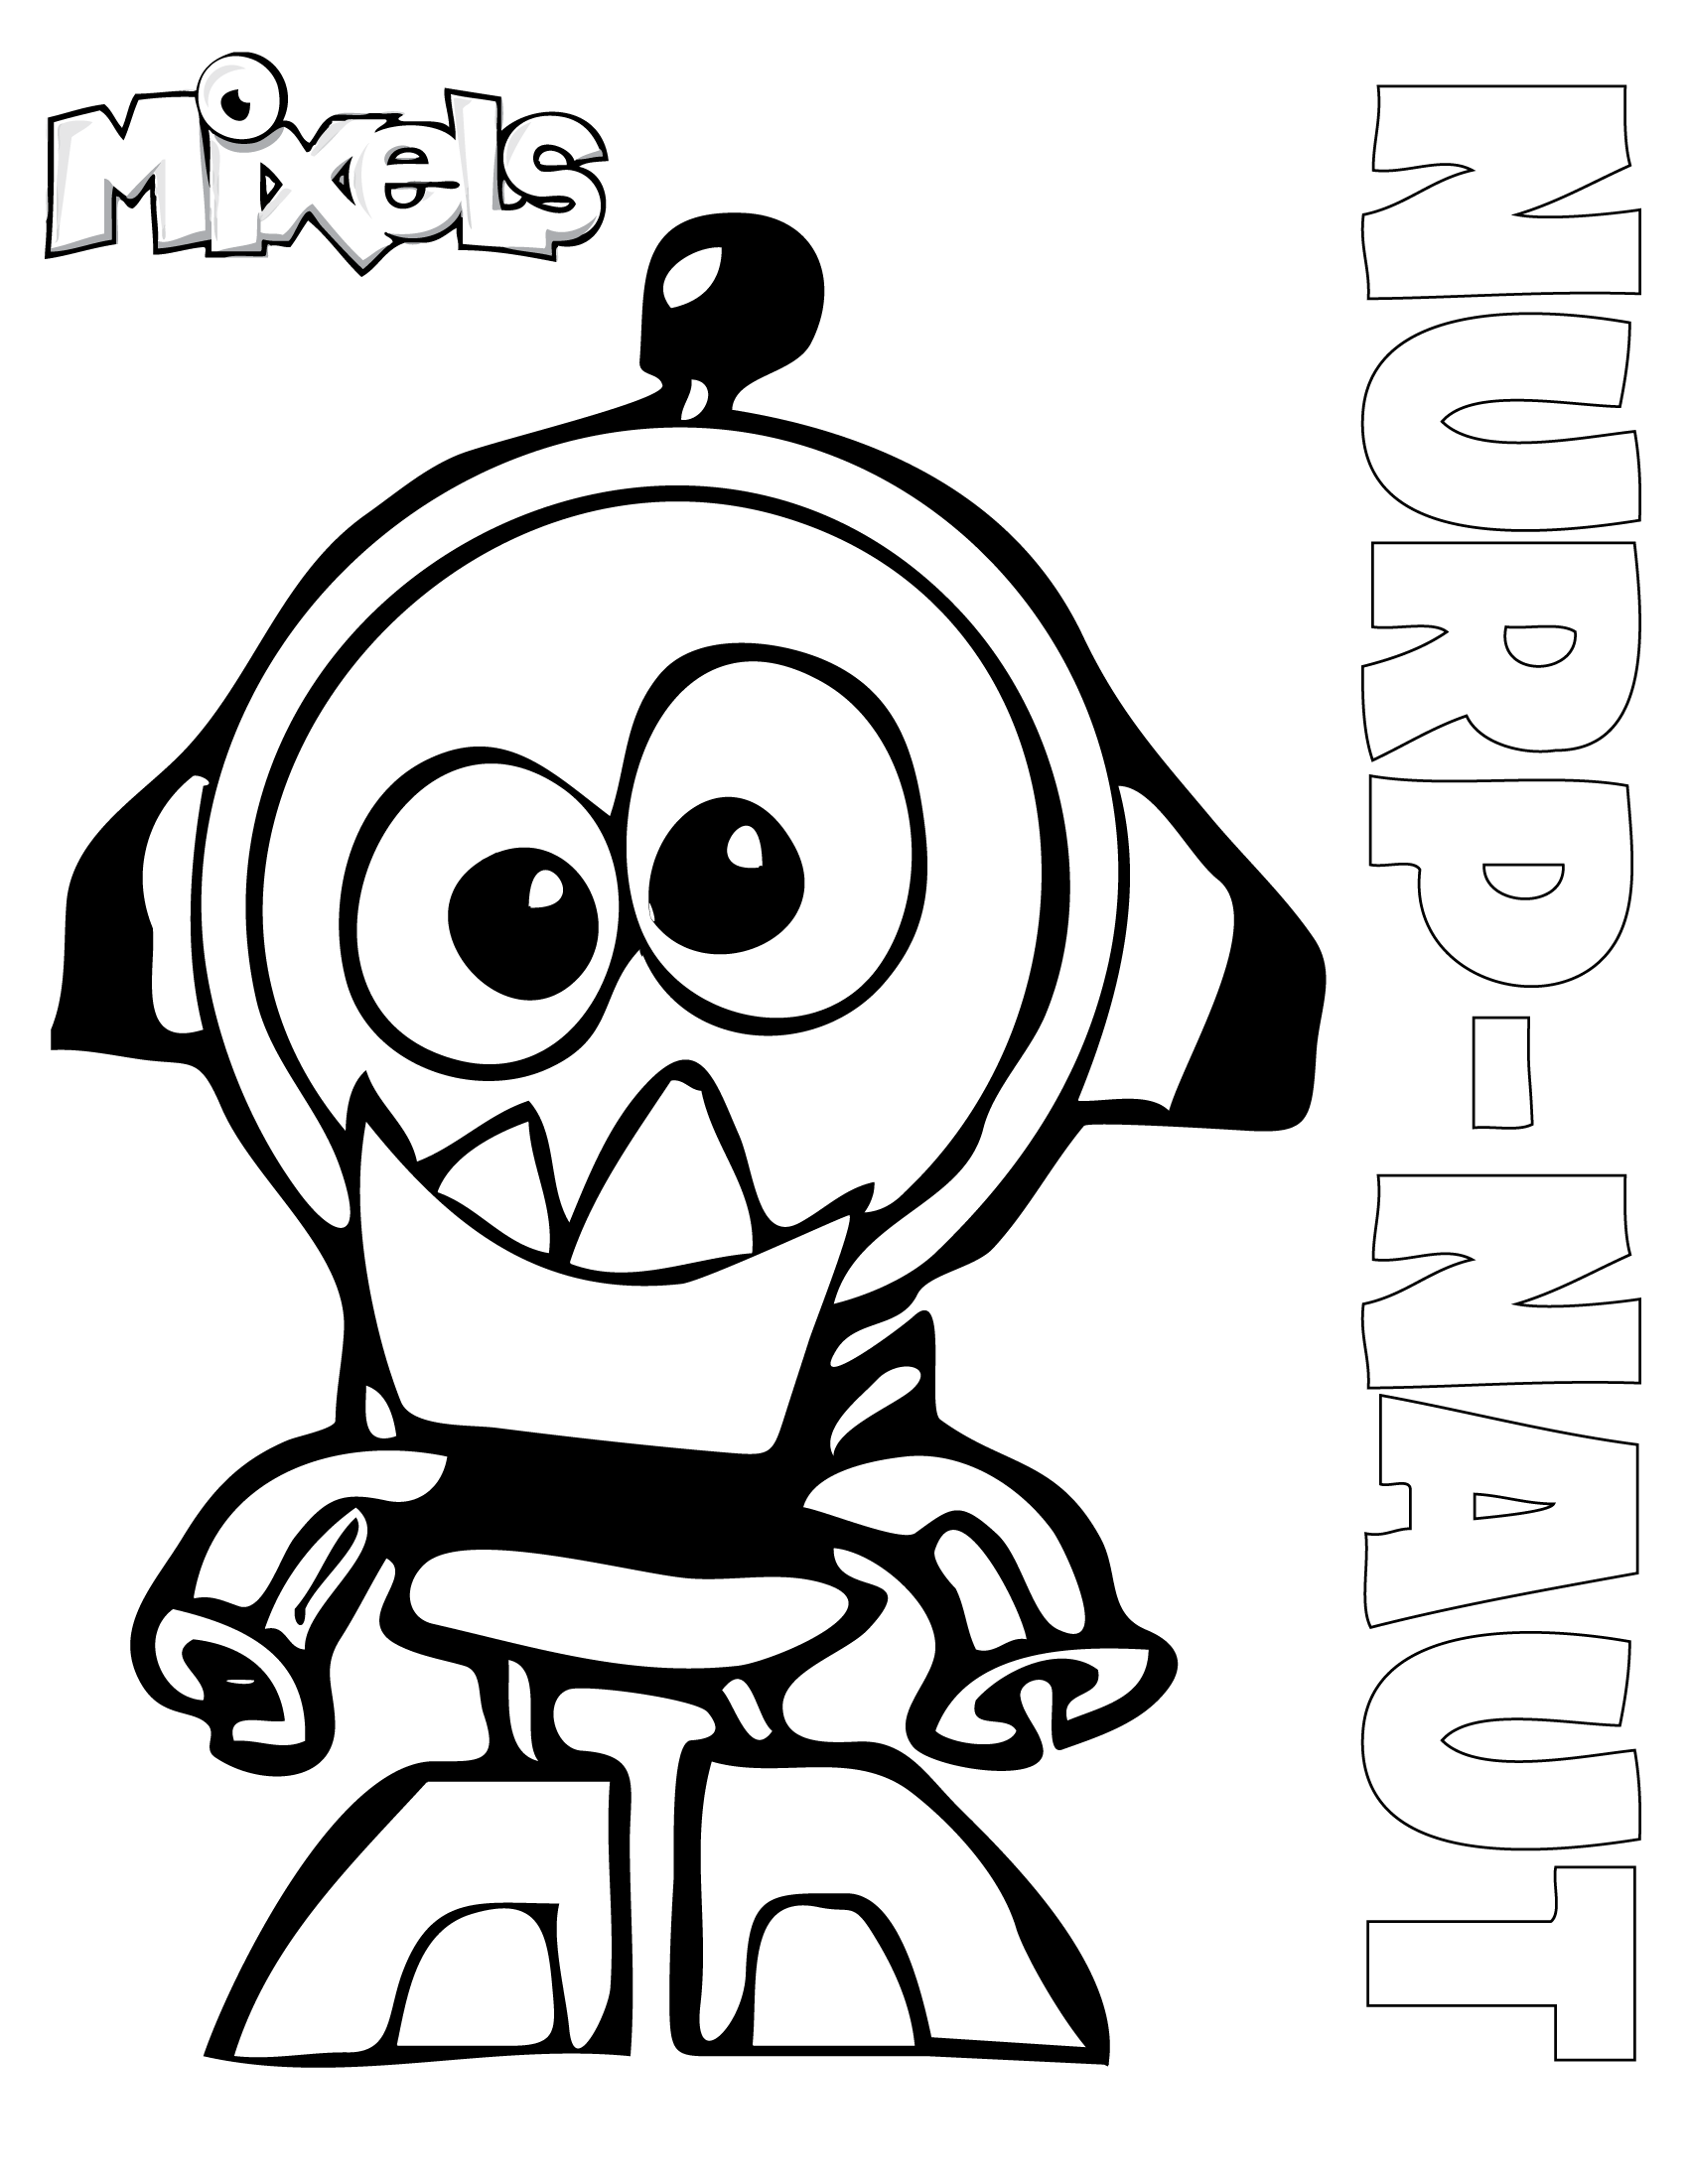 Mixel Coloring Page My Little Corner Page 2 Lego Party Lego Movie Party Kids Party